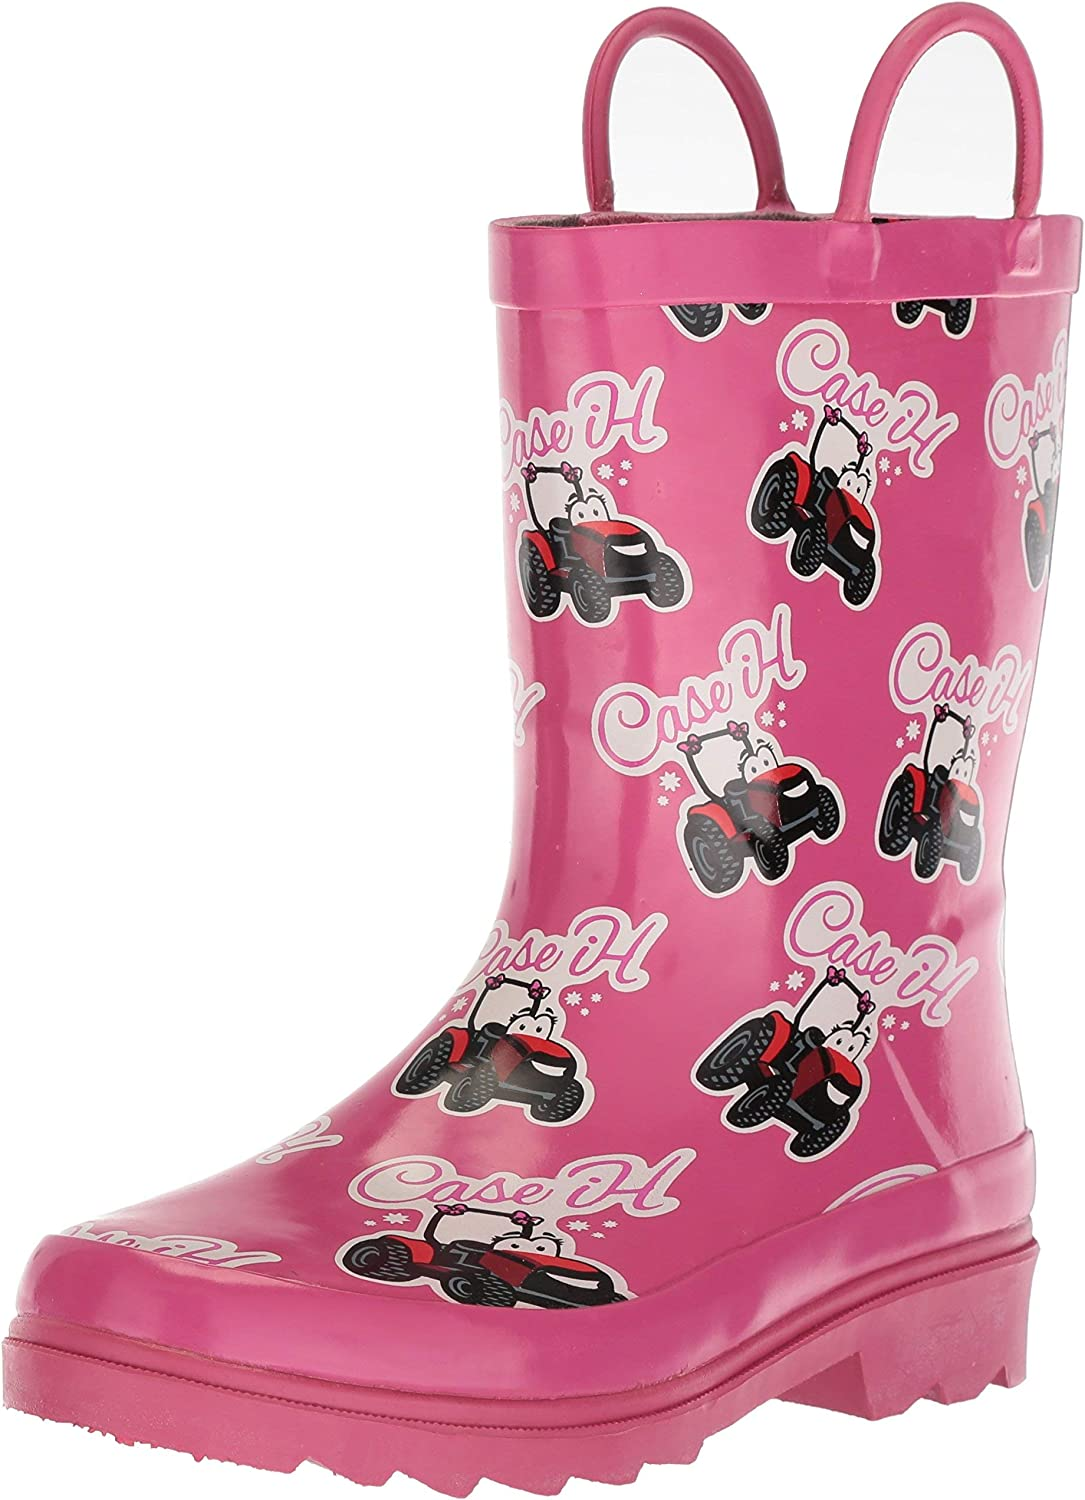 Our shop OFFers the best service Ad Tec 8 Inches Girls Pull On Non Slip New item Waterproof Rain PVC Boots